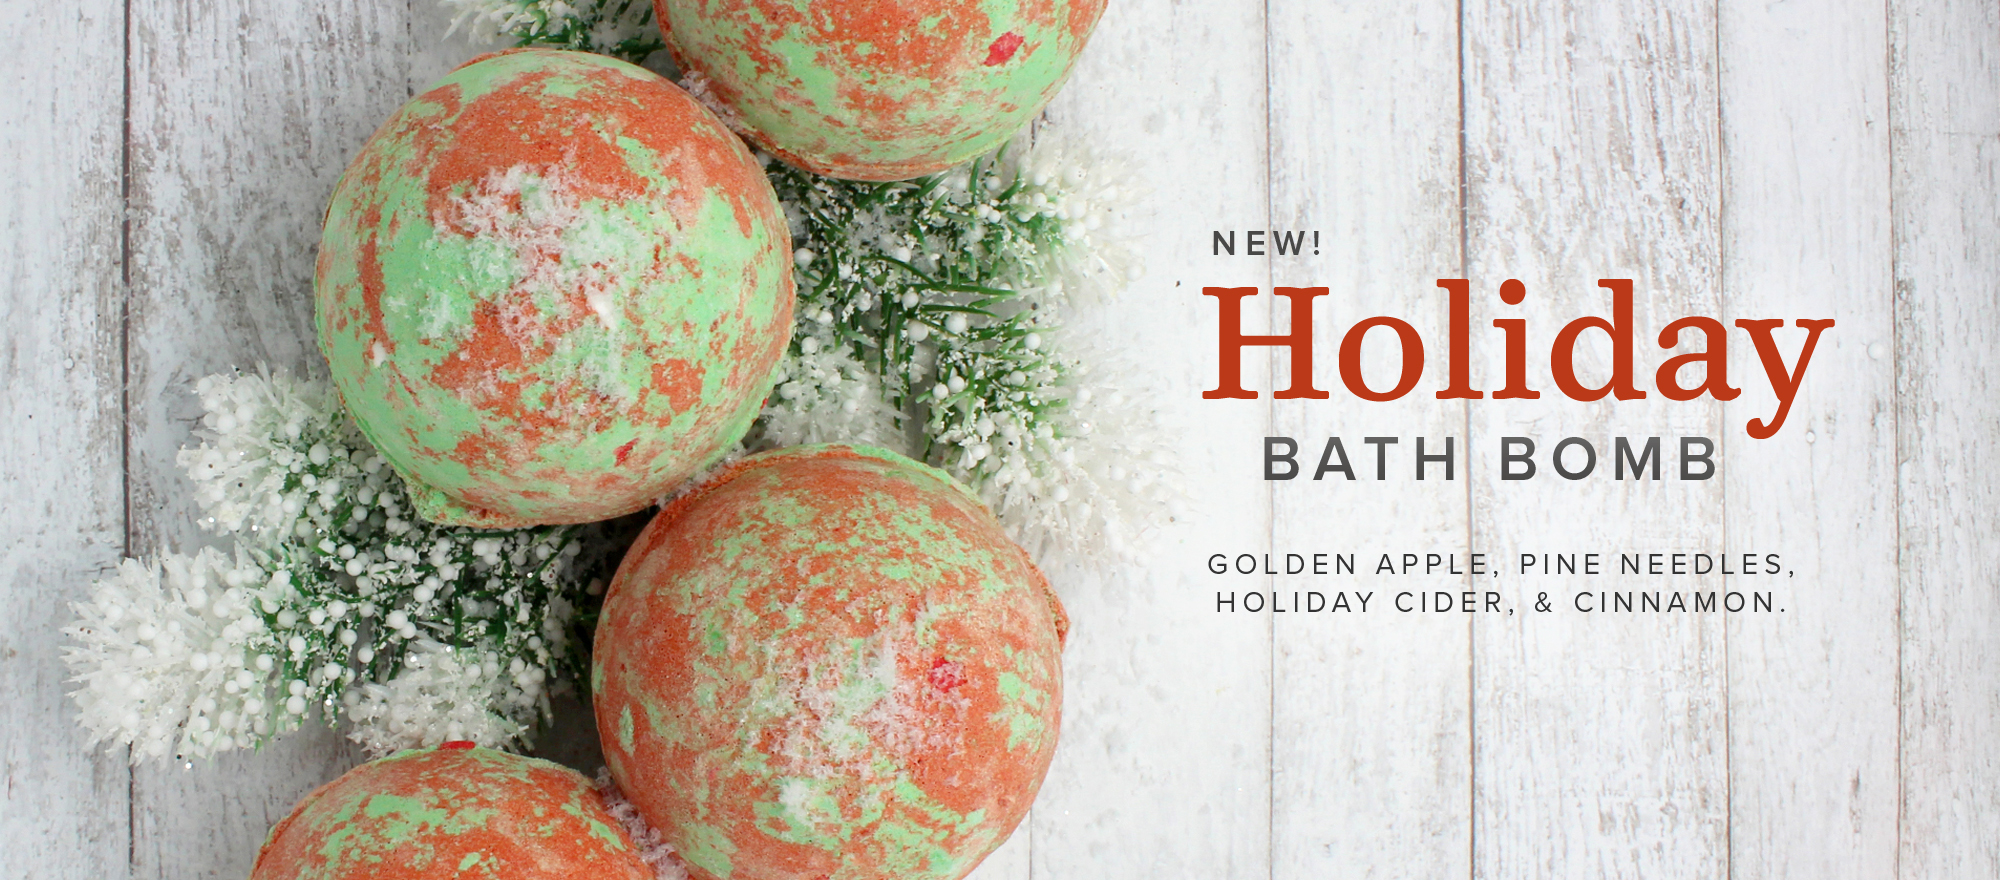 Holiday Bath Bomb